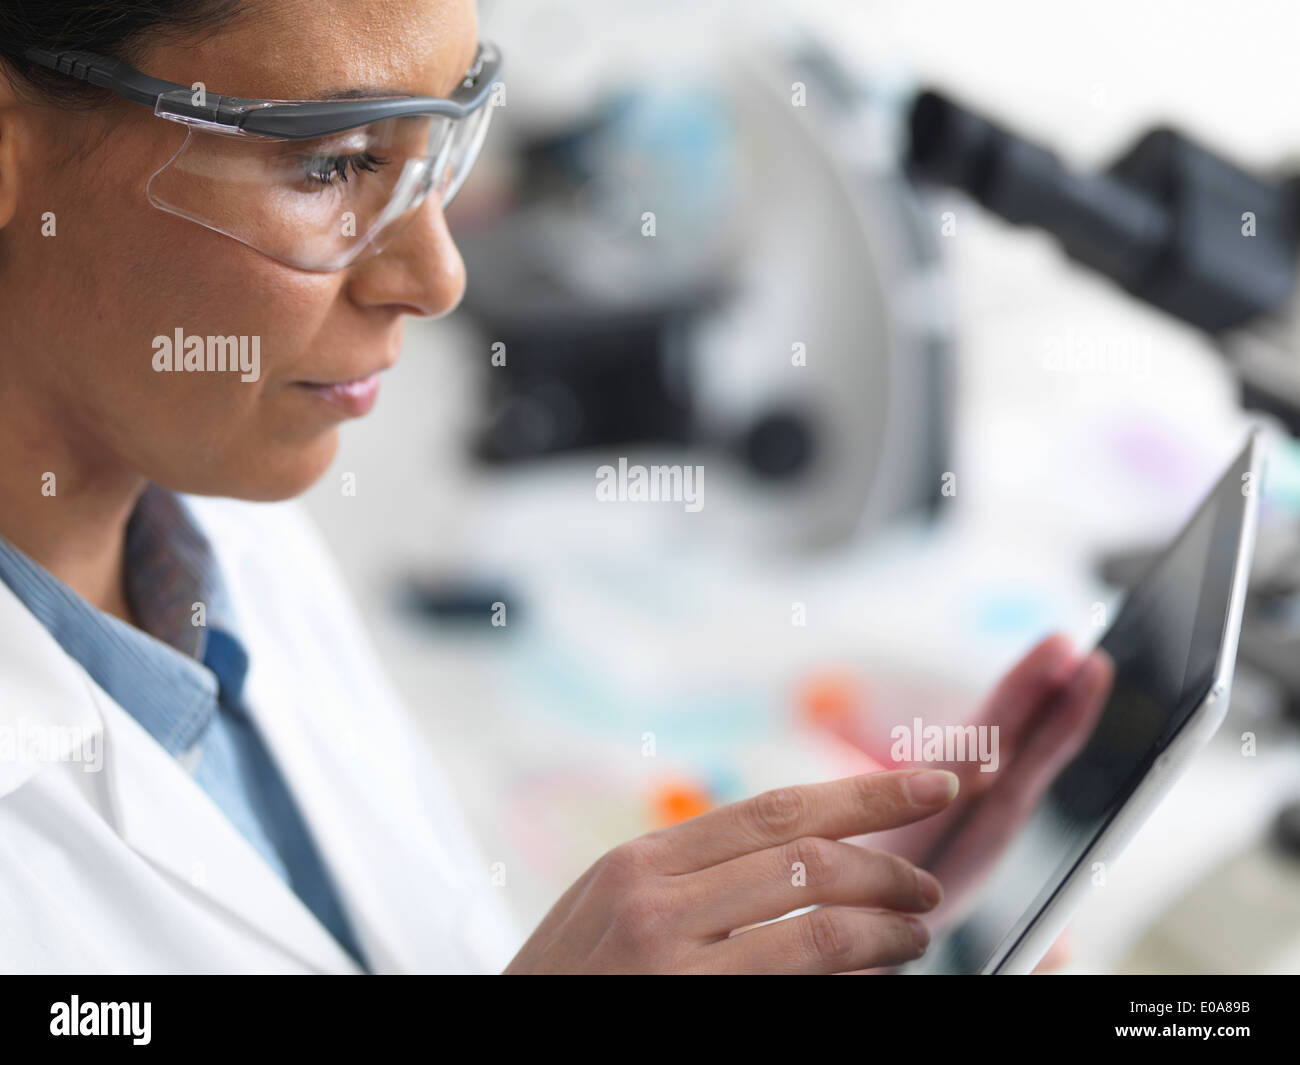 Female scientist viewing test results on a digital tablet in lab - Stock Image